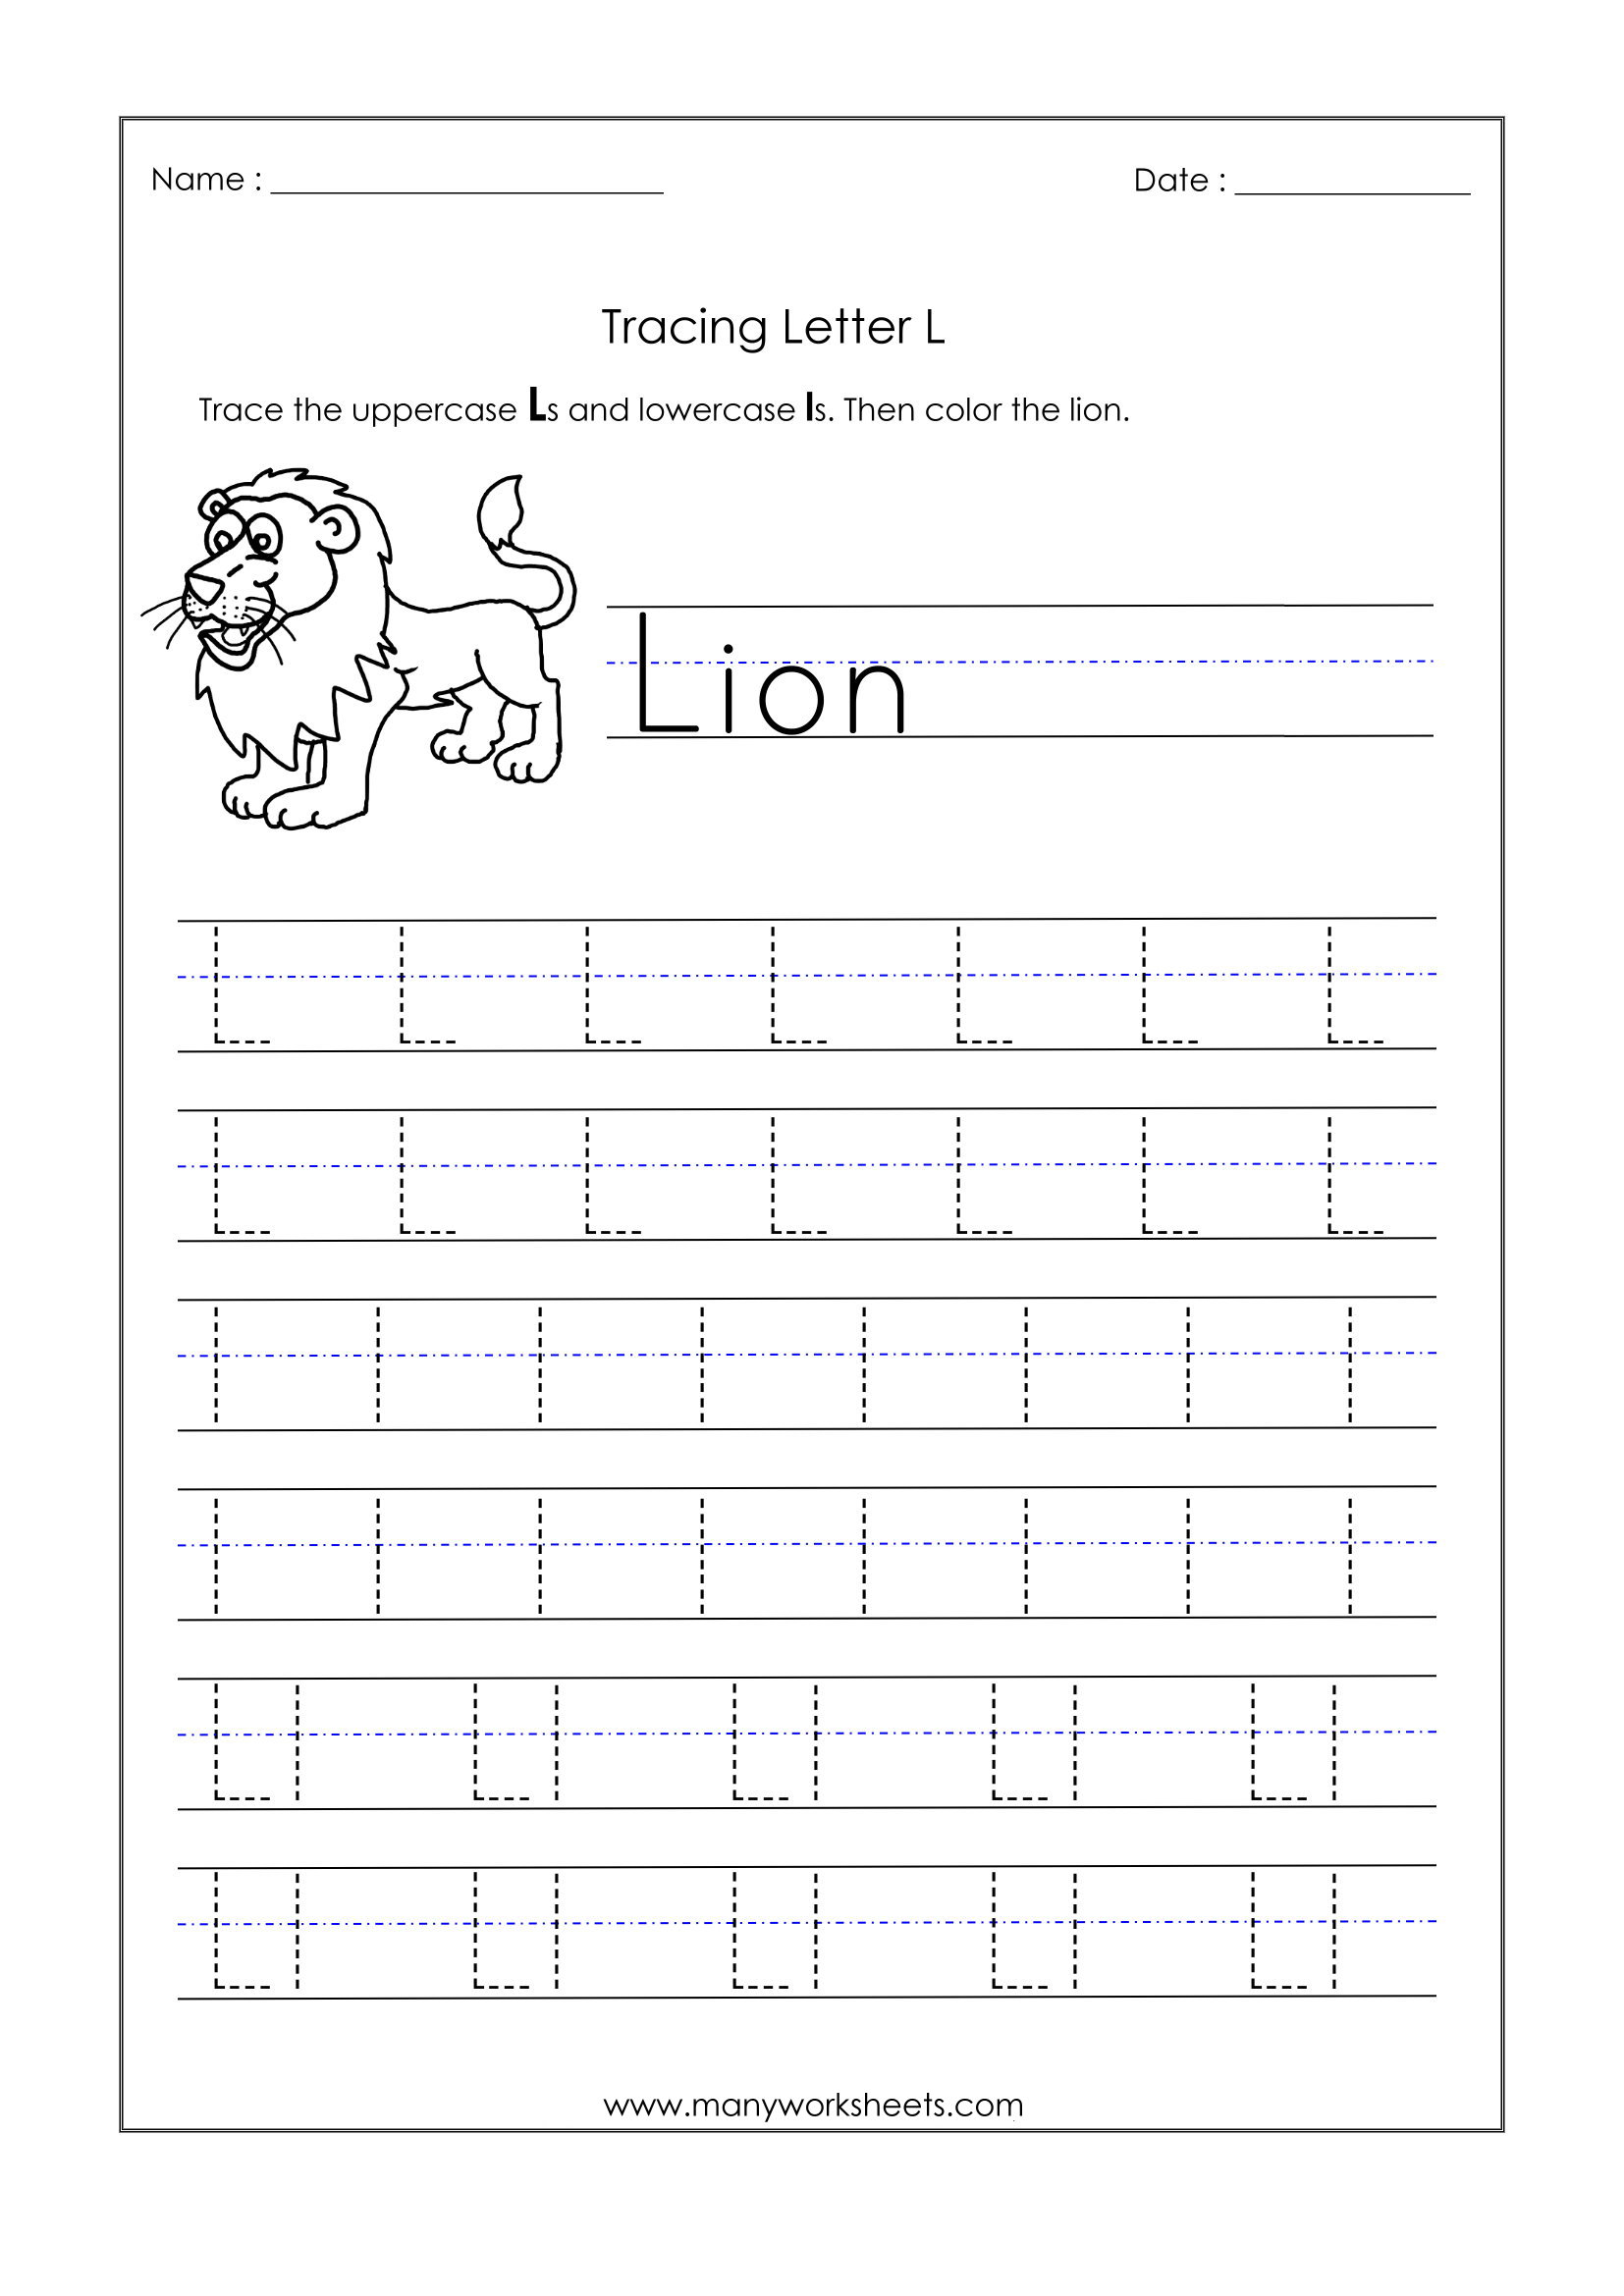 Incredible Letter Tracing Worksheets Image Ideas with Letter L Tracing Preschool